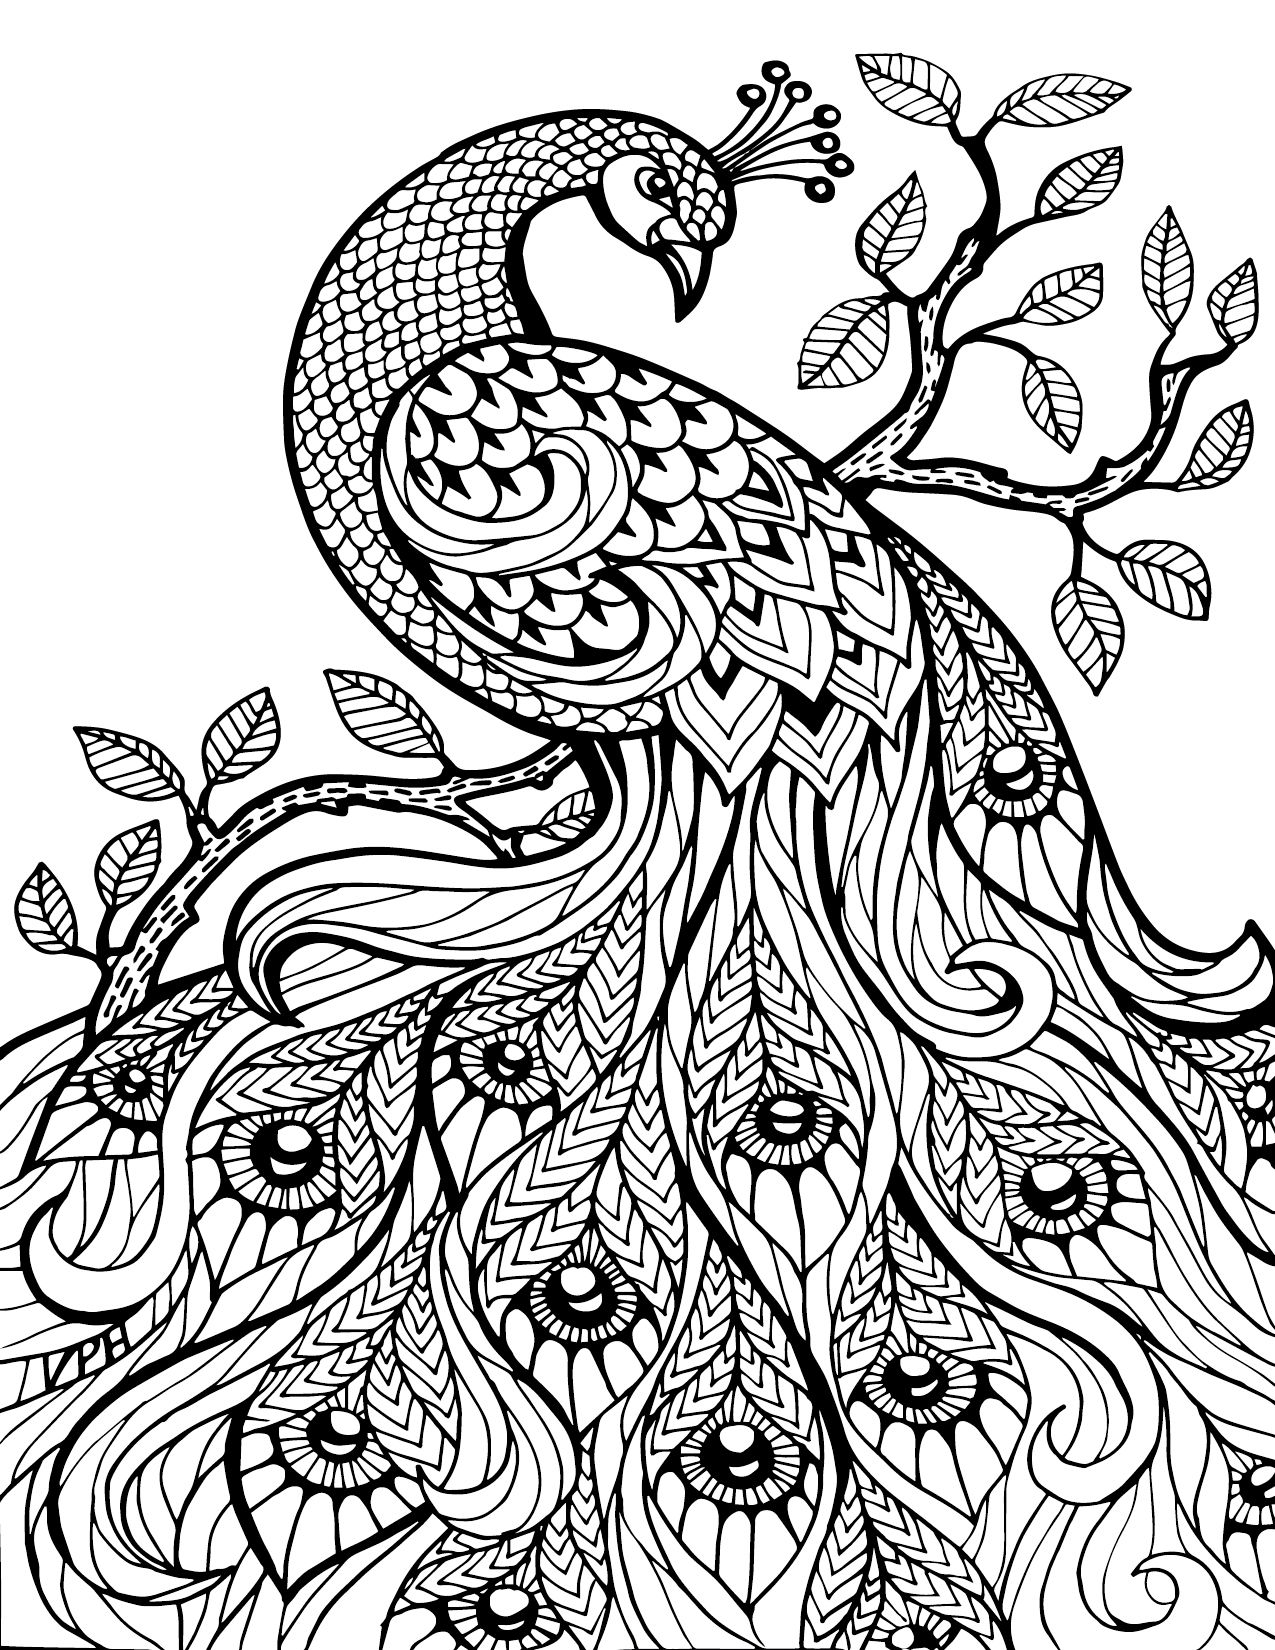 66 Coloring Book For Adults Printable Free